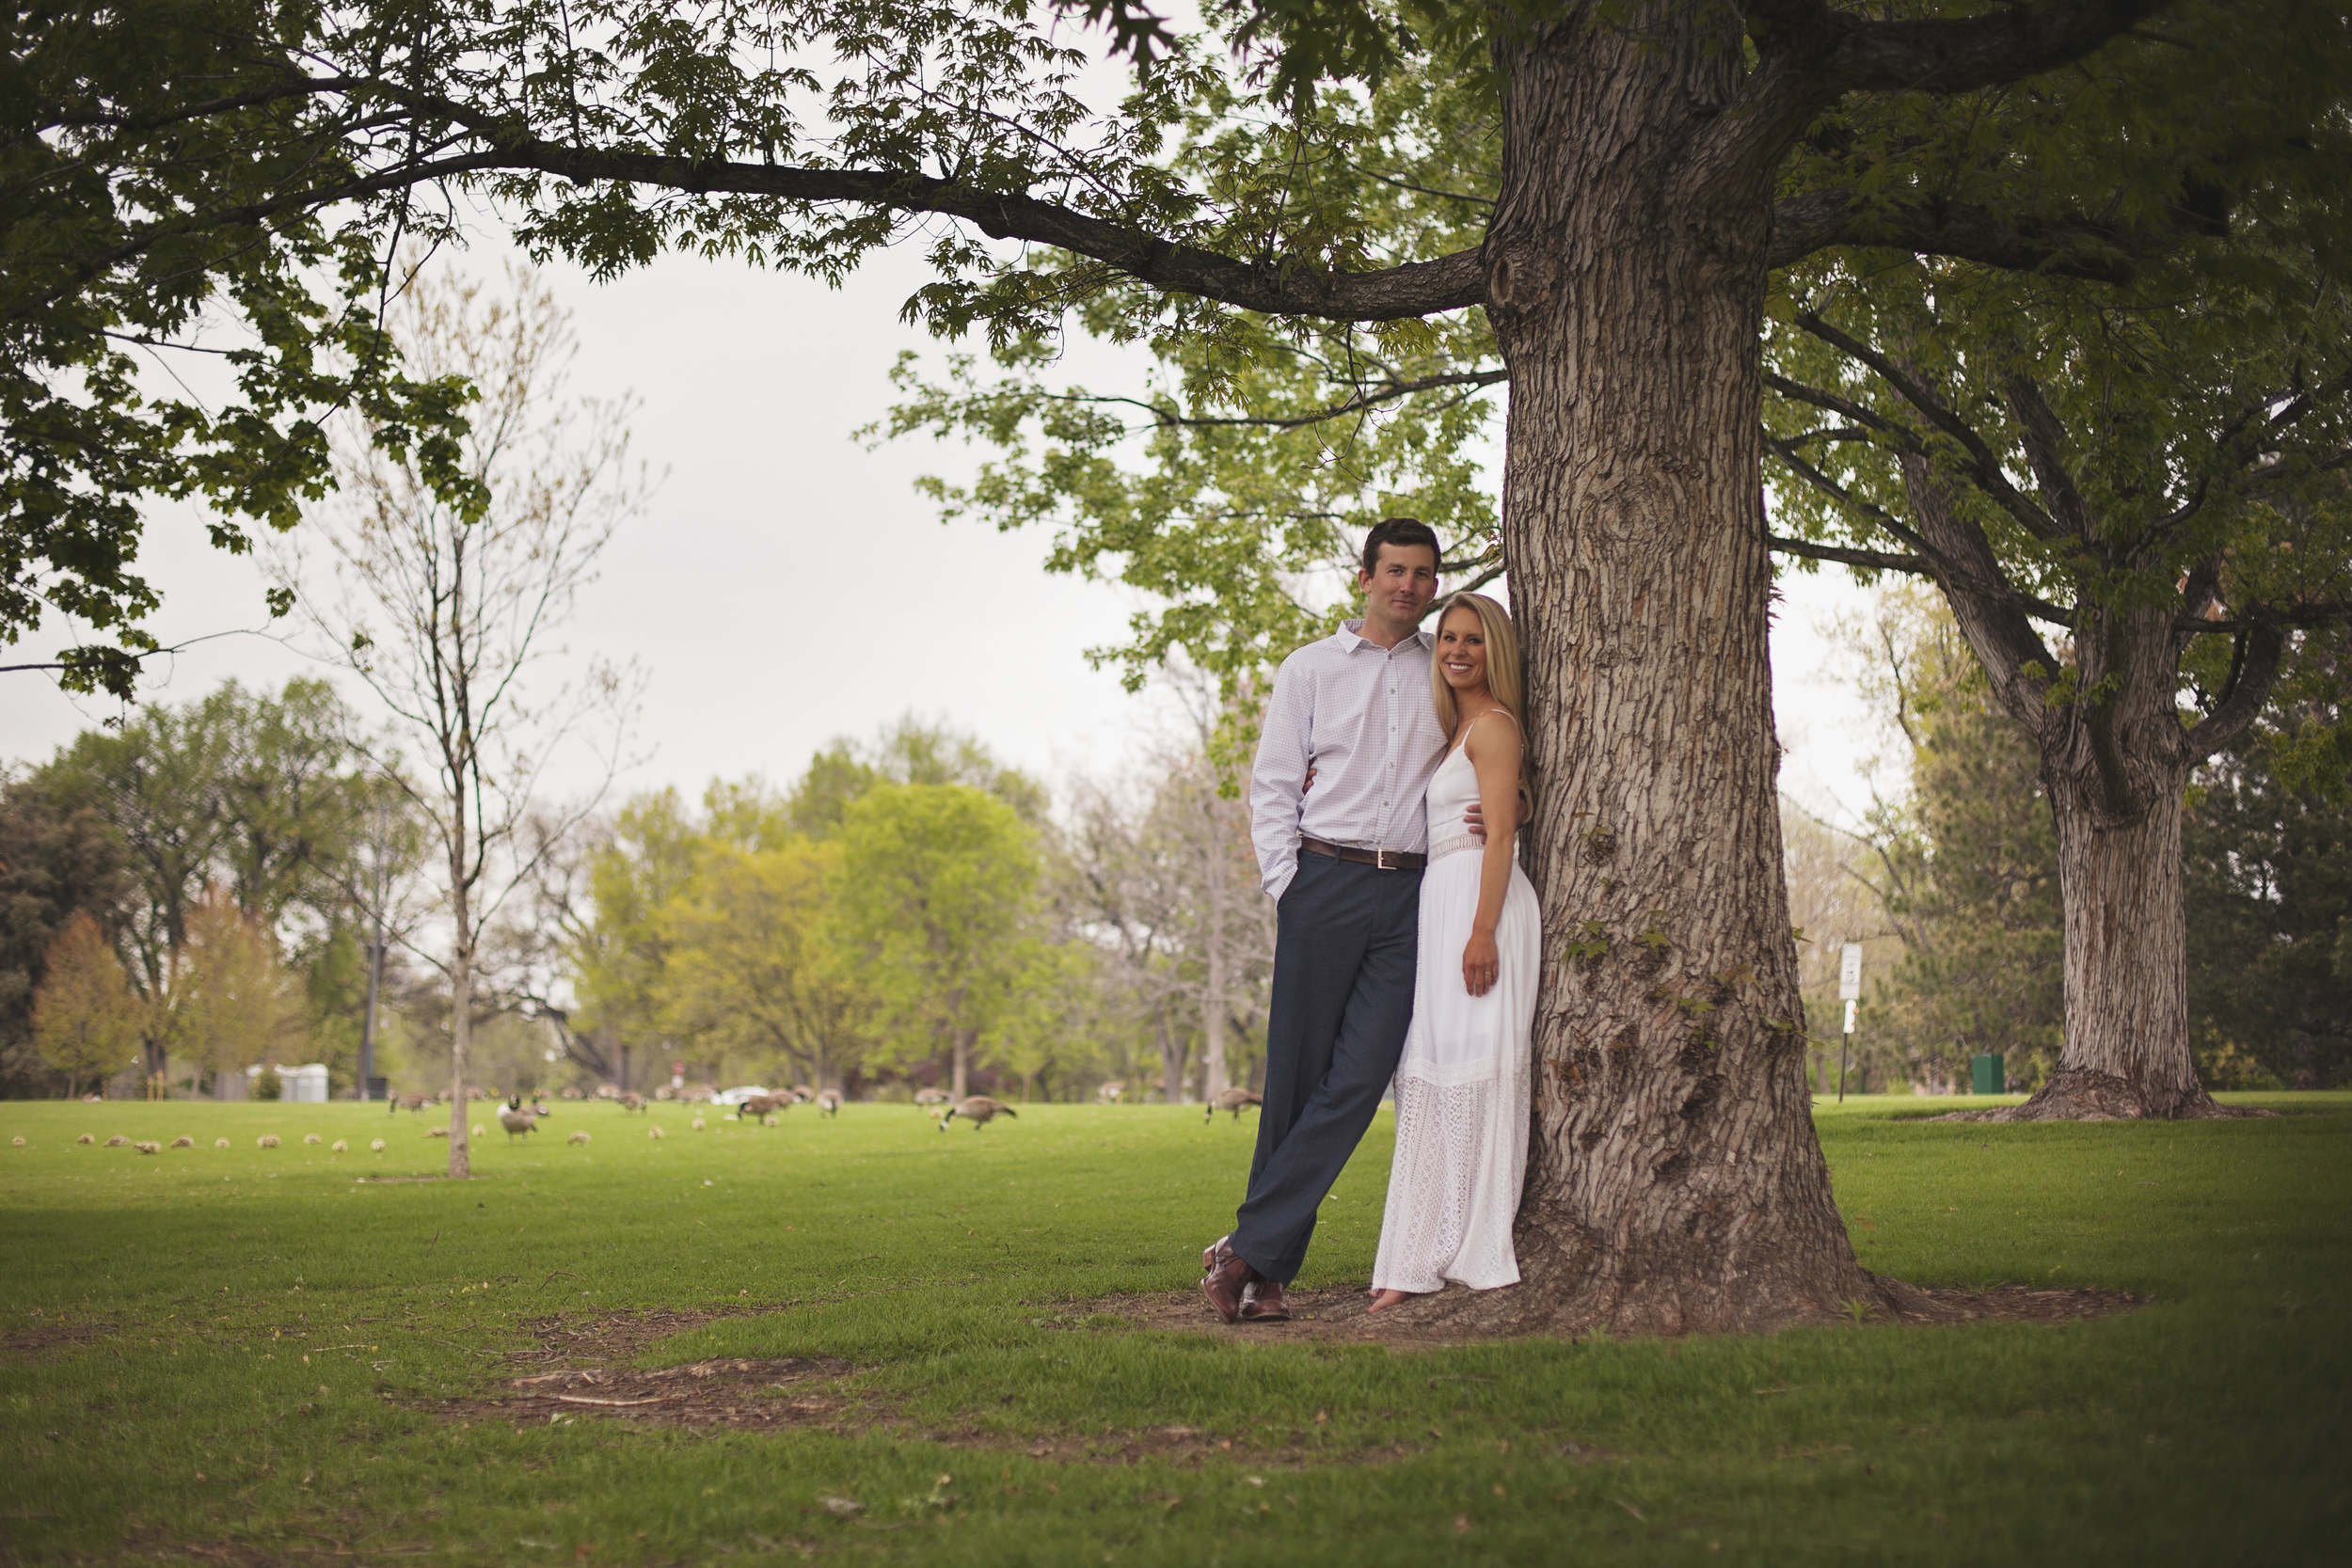 Couple leaning on tree with green grass around them during engagement photo session